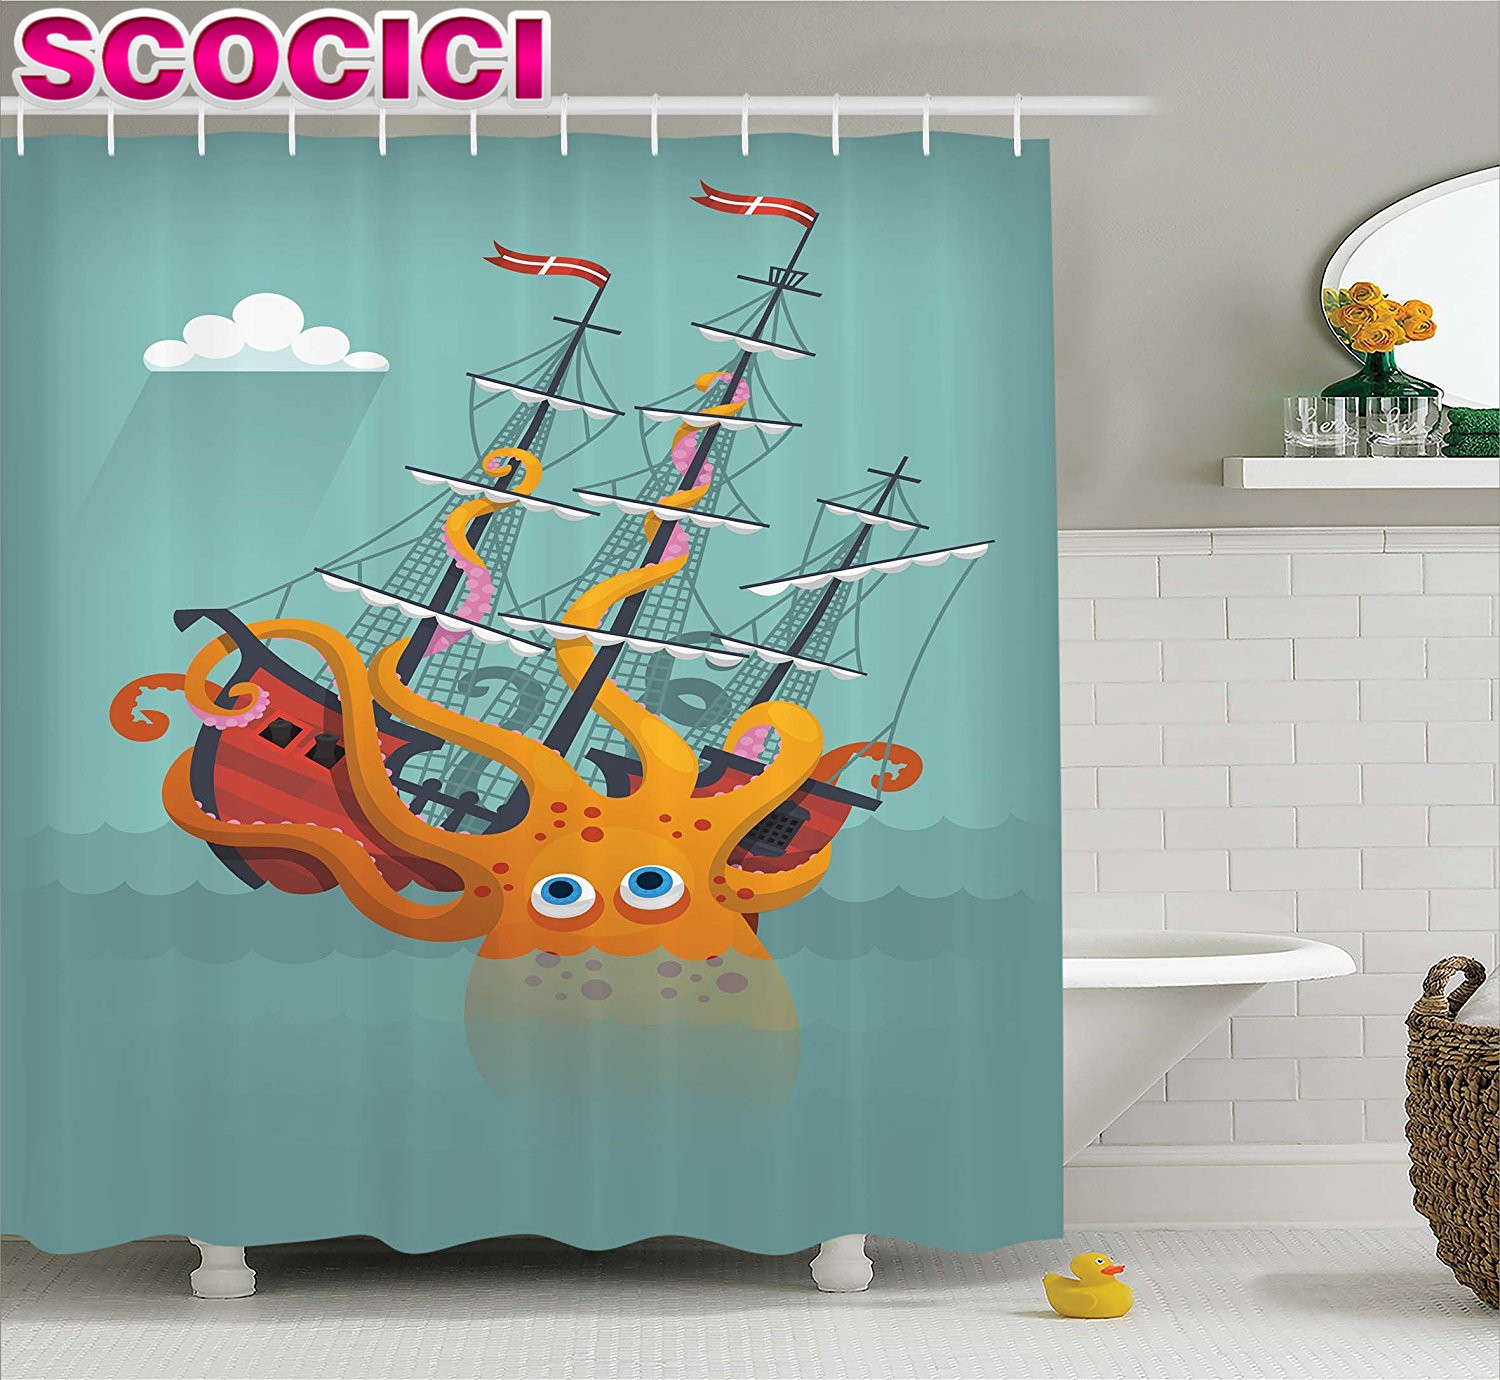 Pirate bathroom decor - Kraken Decor Shower Curtain Giant Squid Sinking A Pirate Boat Into Ocean Anchor Ship Humor Kids Design Fabric Bathroom Decor Set